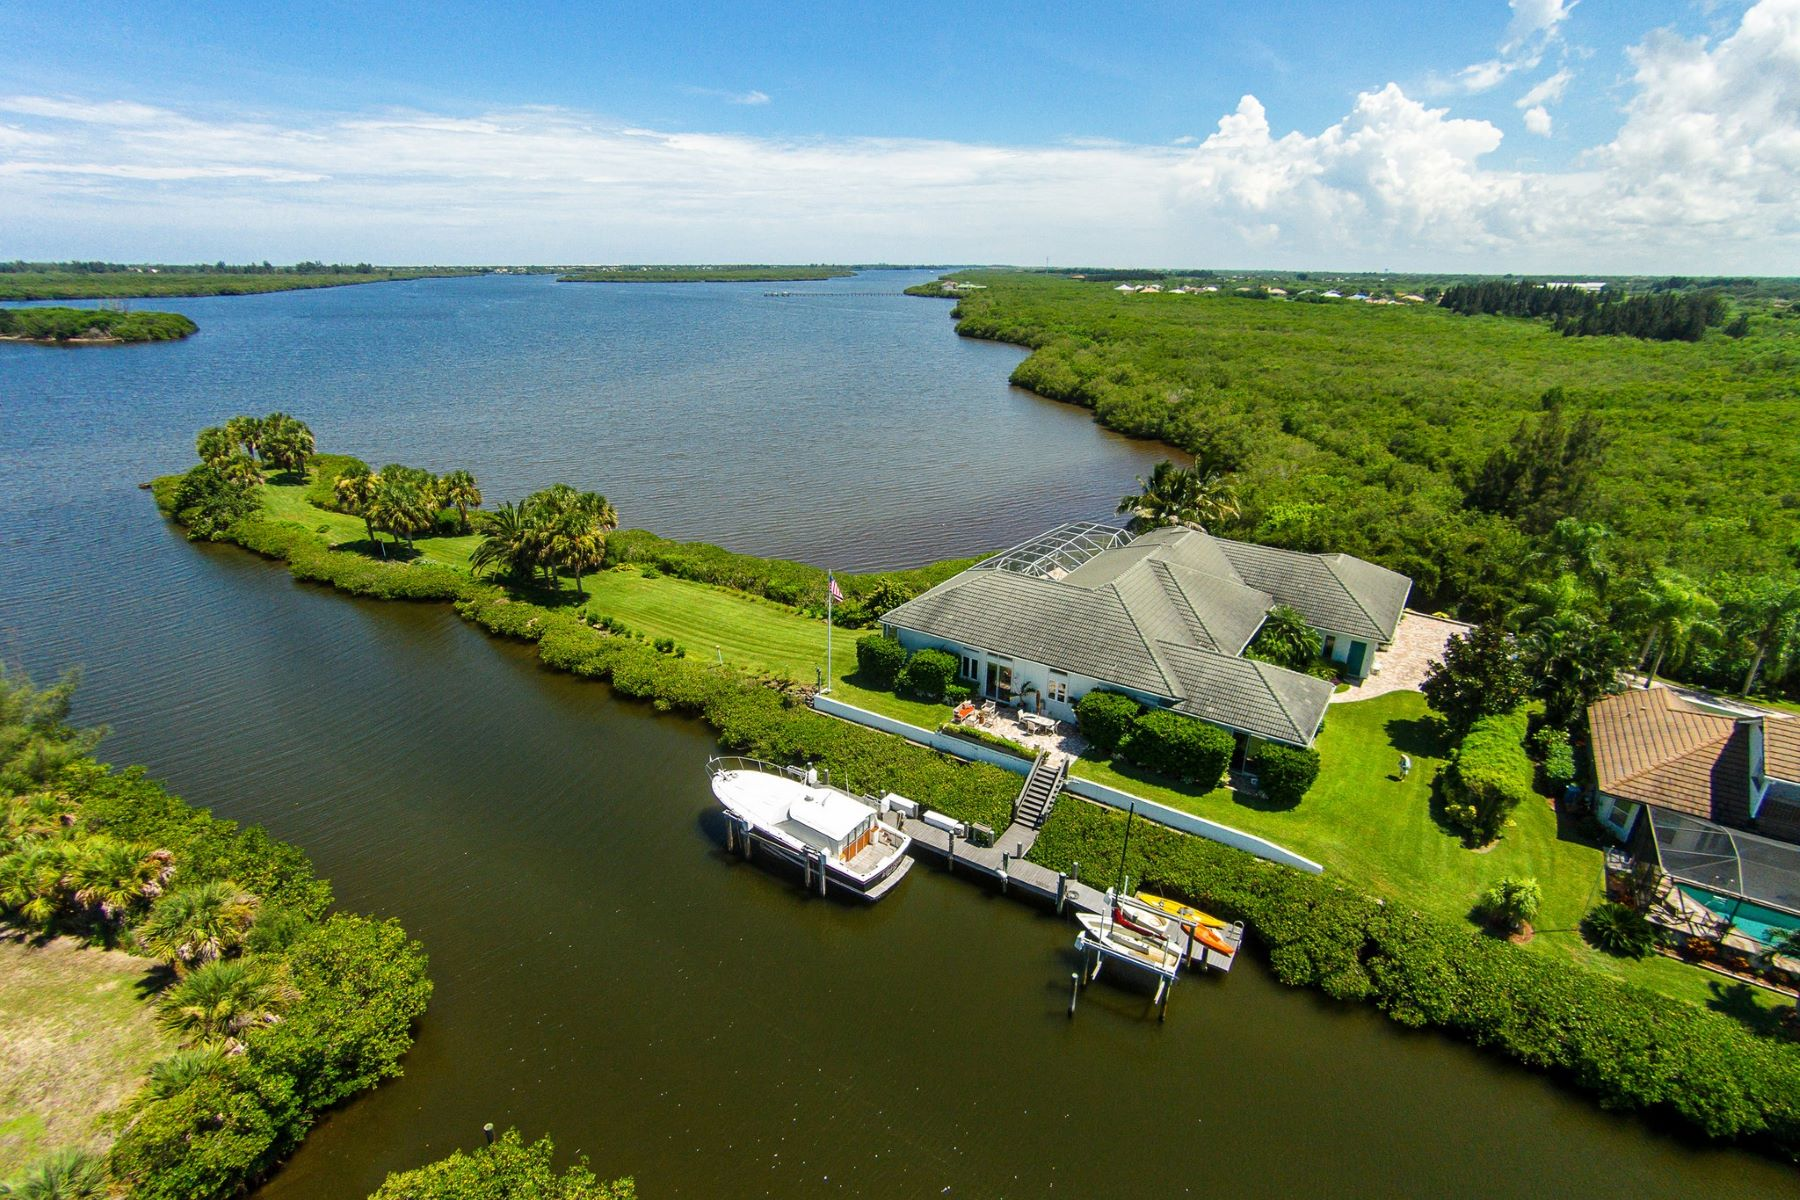 Maison unifamiliale pour l Vente à Riverfront Point Lot 3490 Marsha Lane Vero Beach, Florida, 32967 États-Unis